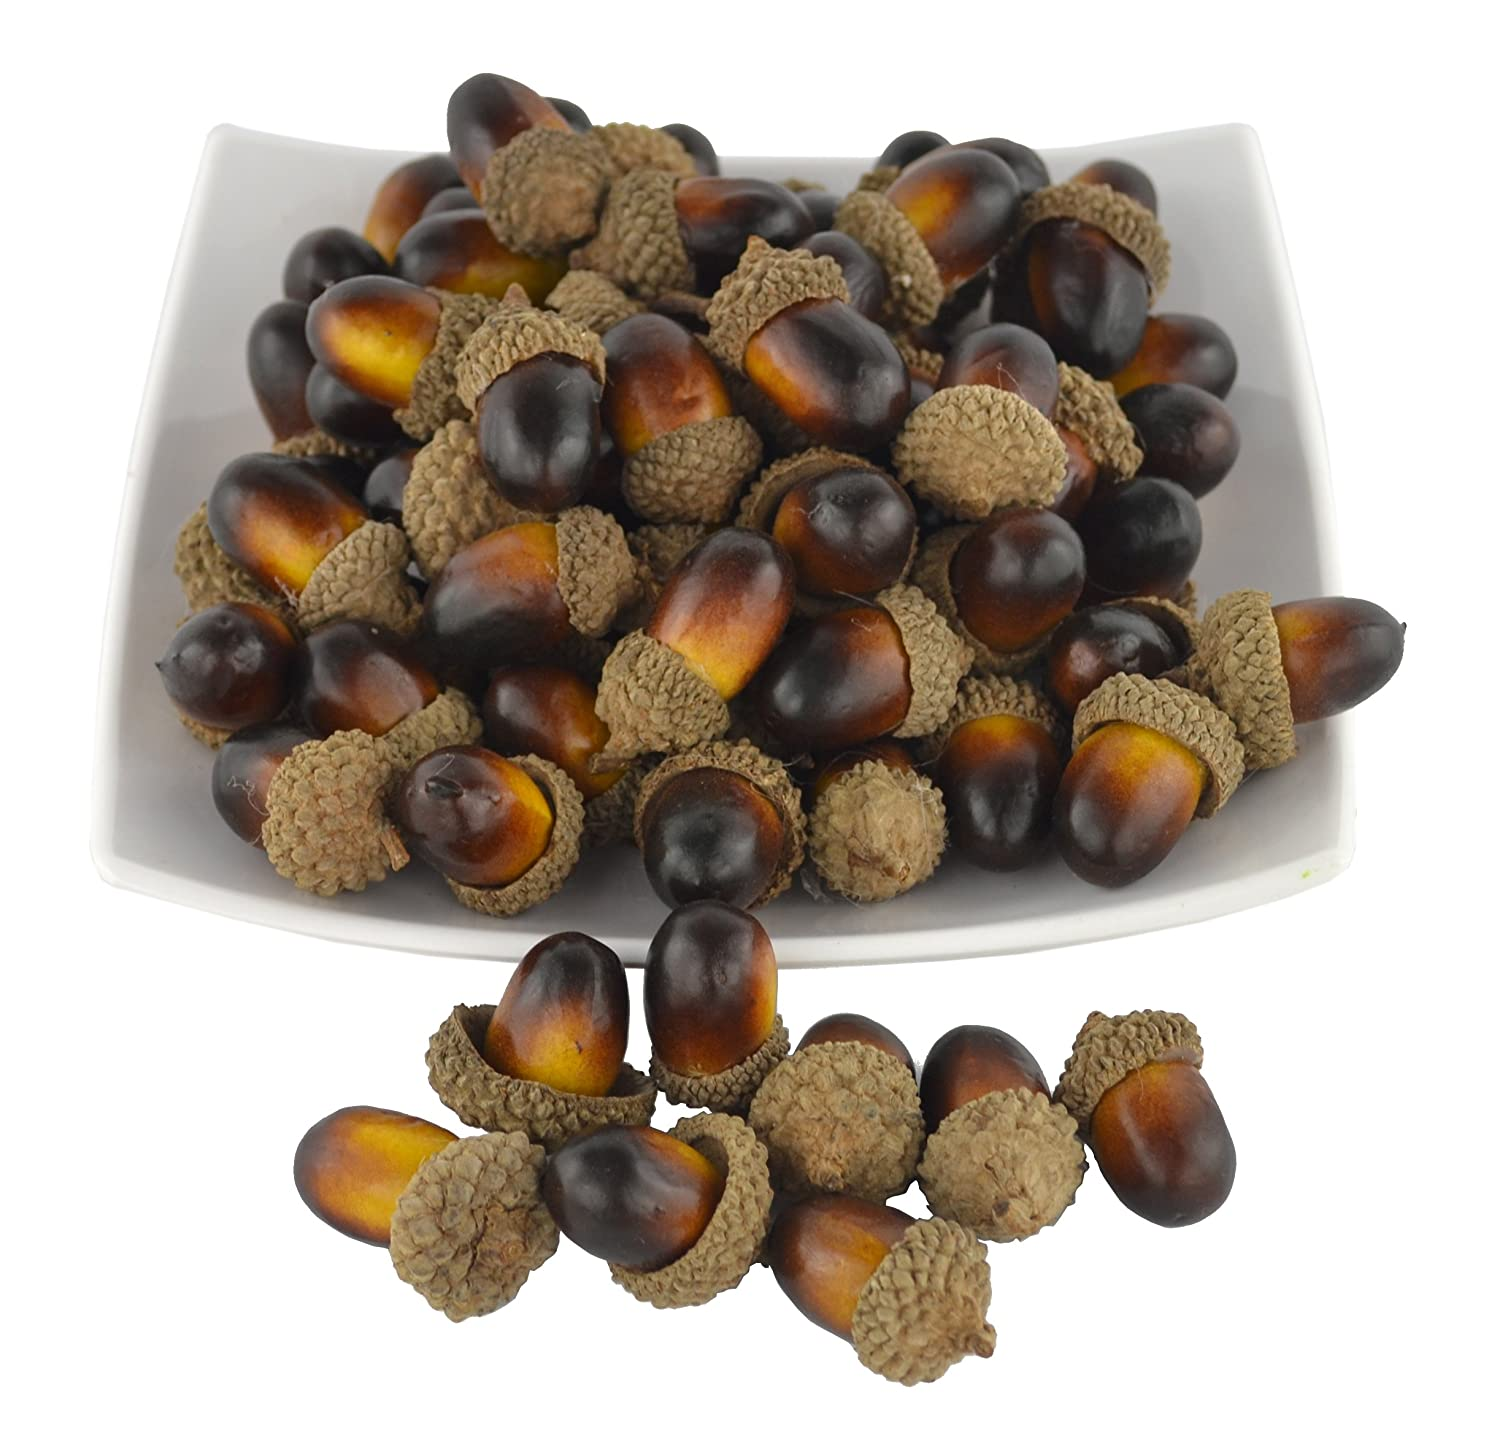 SAMYO 50 PCS Simulation Artificial Lifelike Fruit Nutty-Brown Acorns for Fall Table Scatter Crafting, Drawing,Home House Kitchen and Autumn Decoration